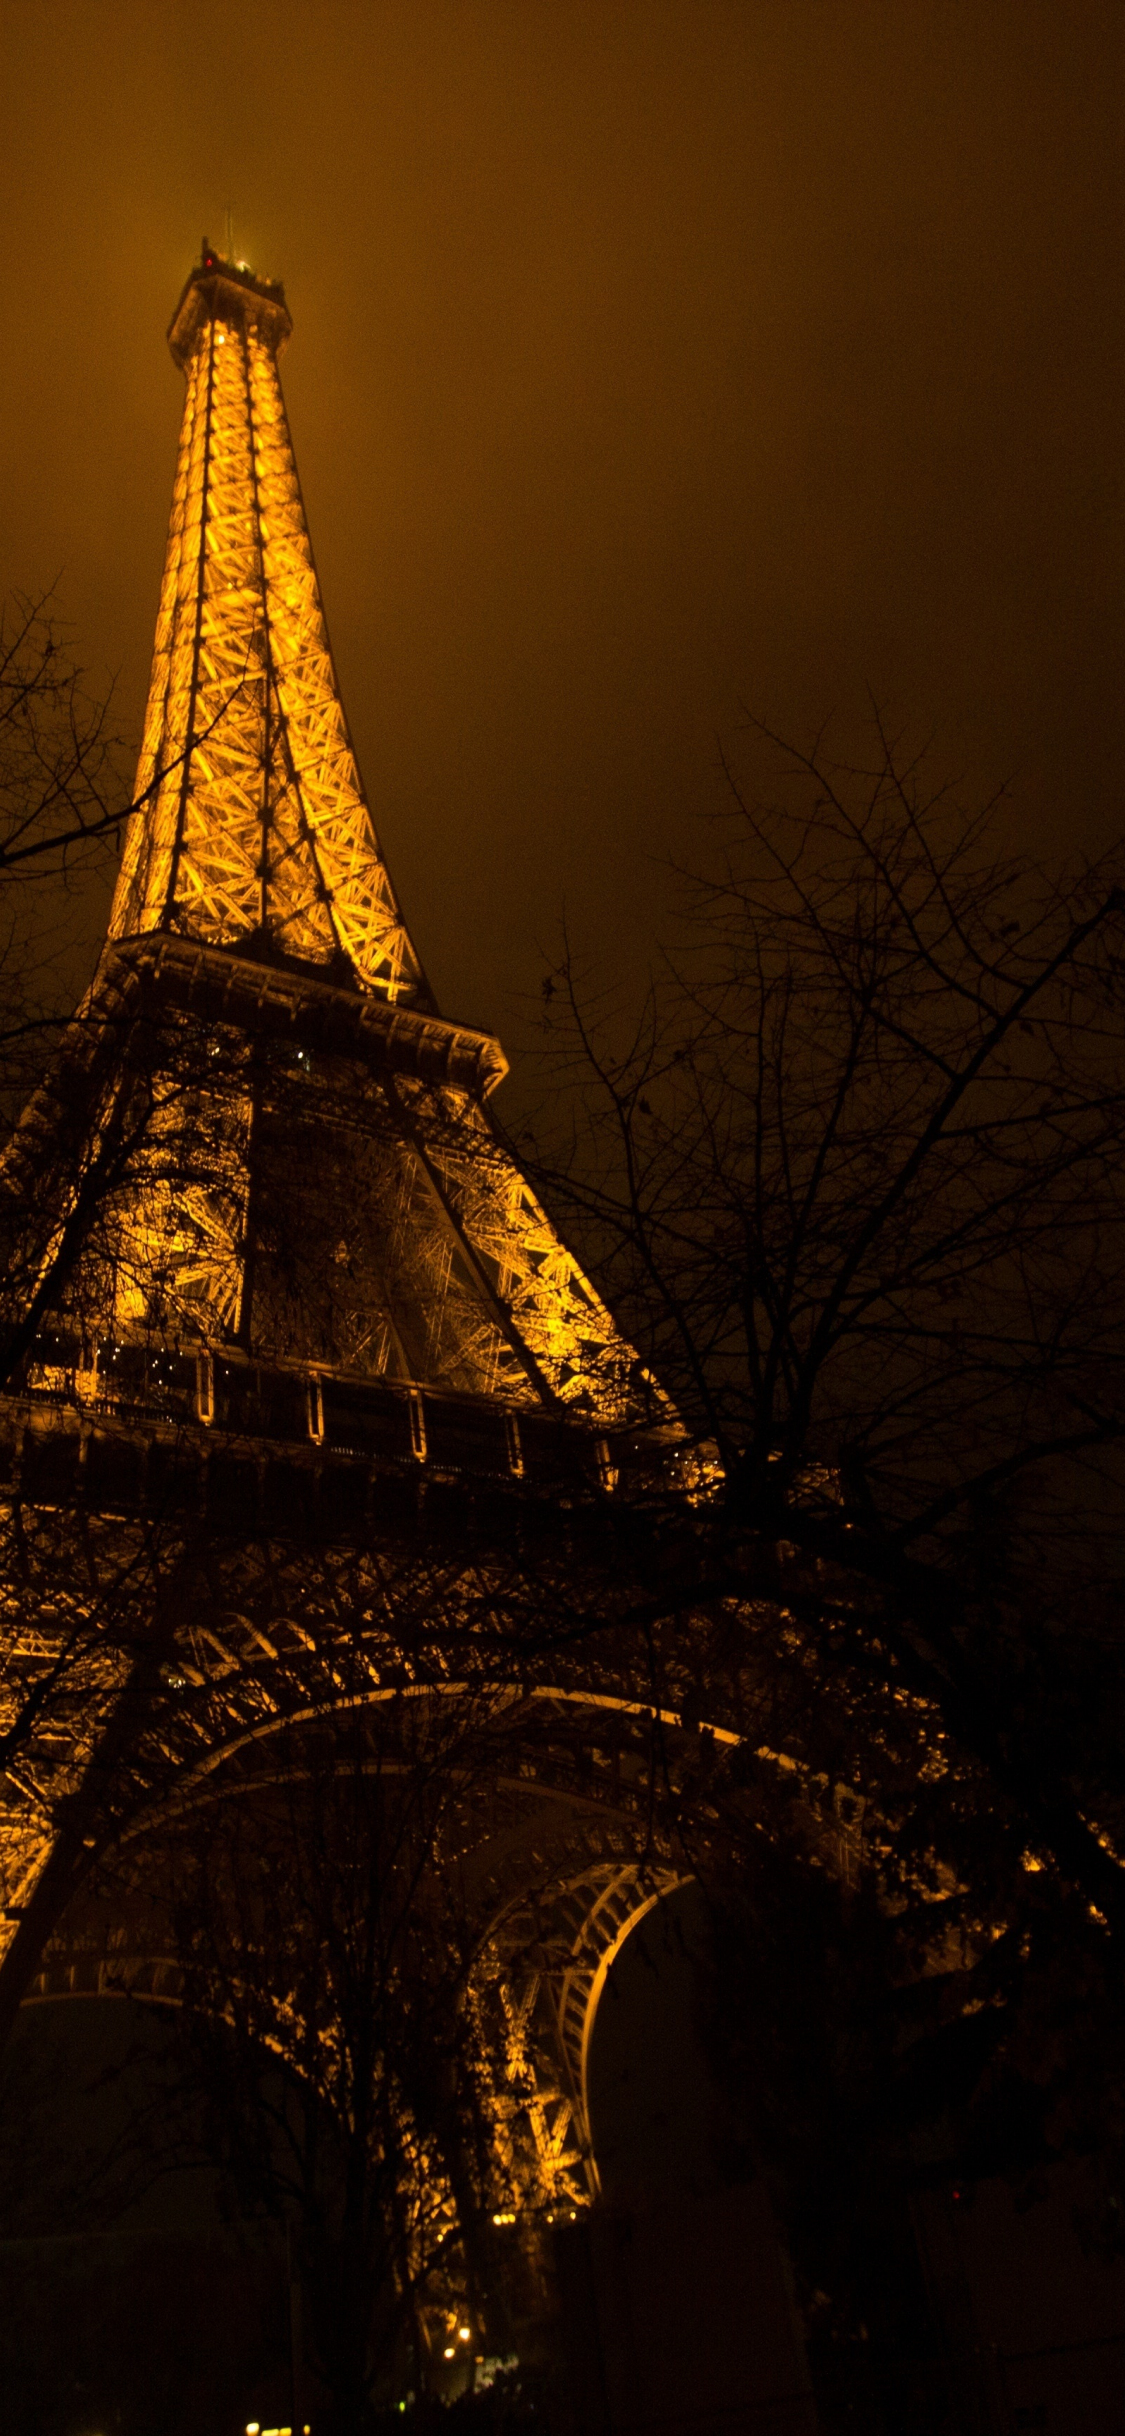 Download 1125x2436 Wallpaper Eiffel Tower Architecture Night